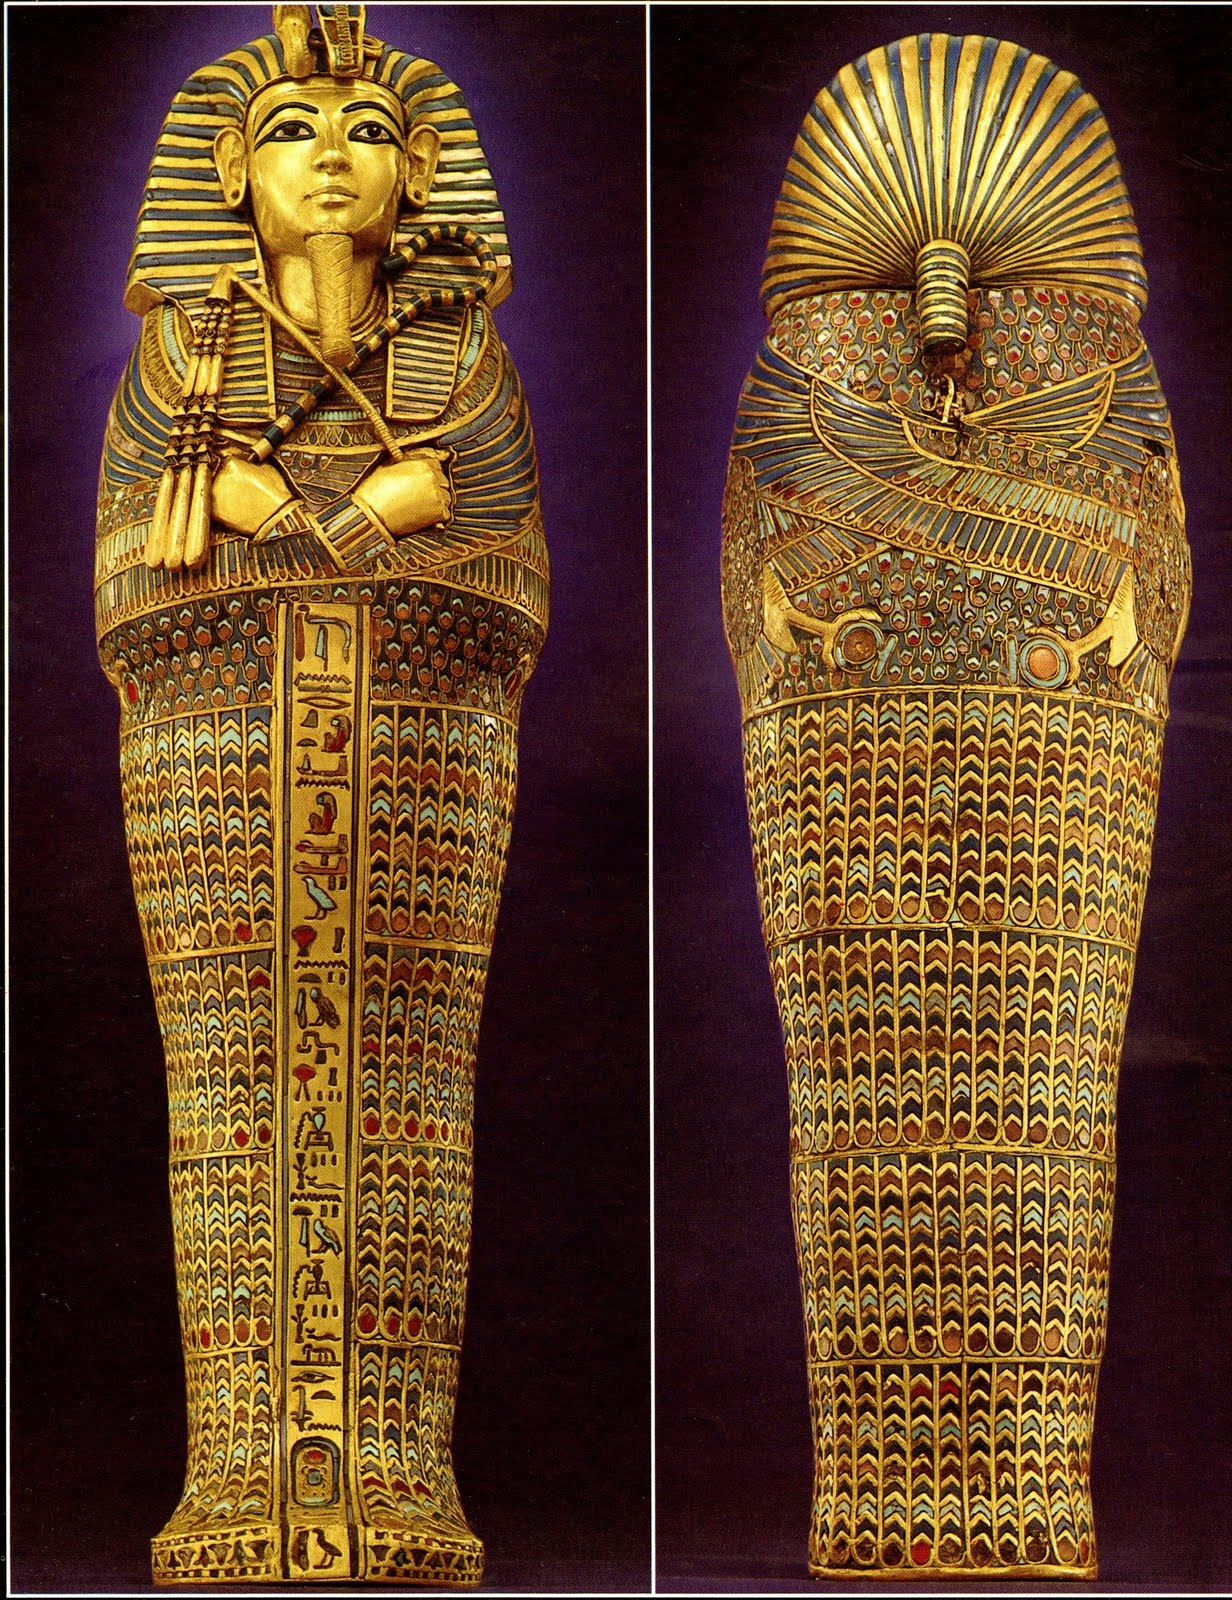 King Tut Tomb Discovery: Paradox: THE CURSE OF THE MUMMY